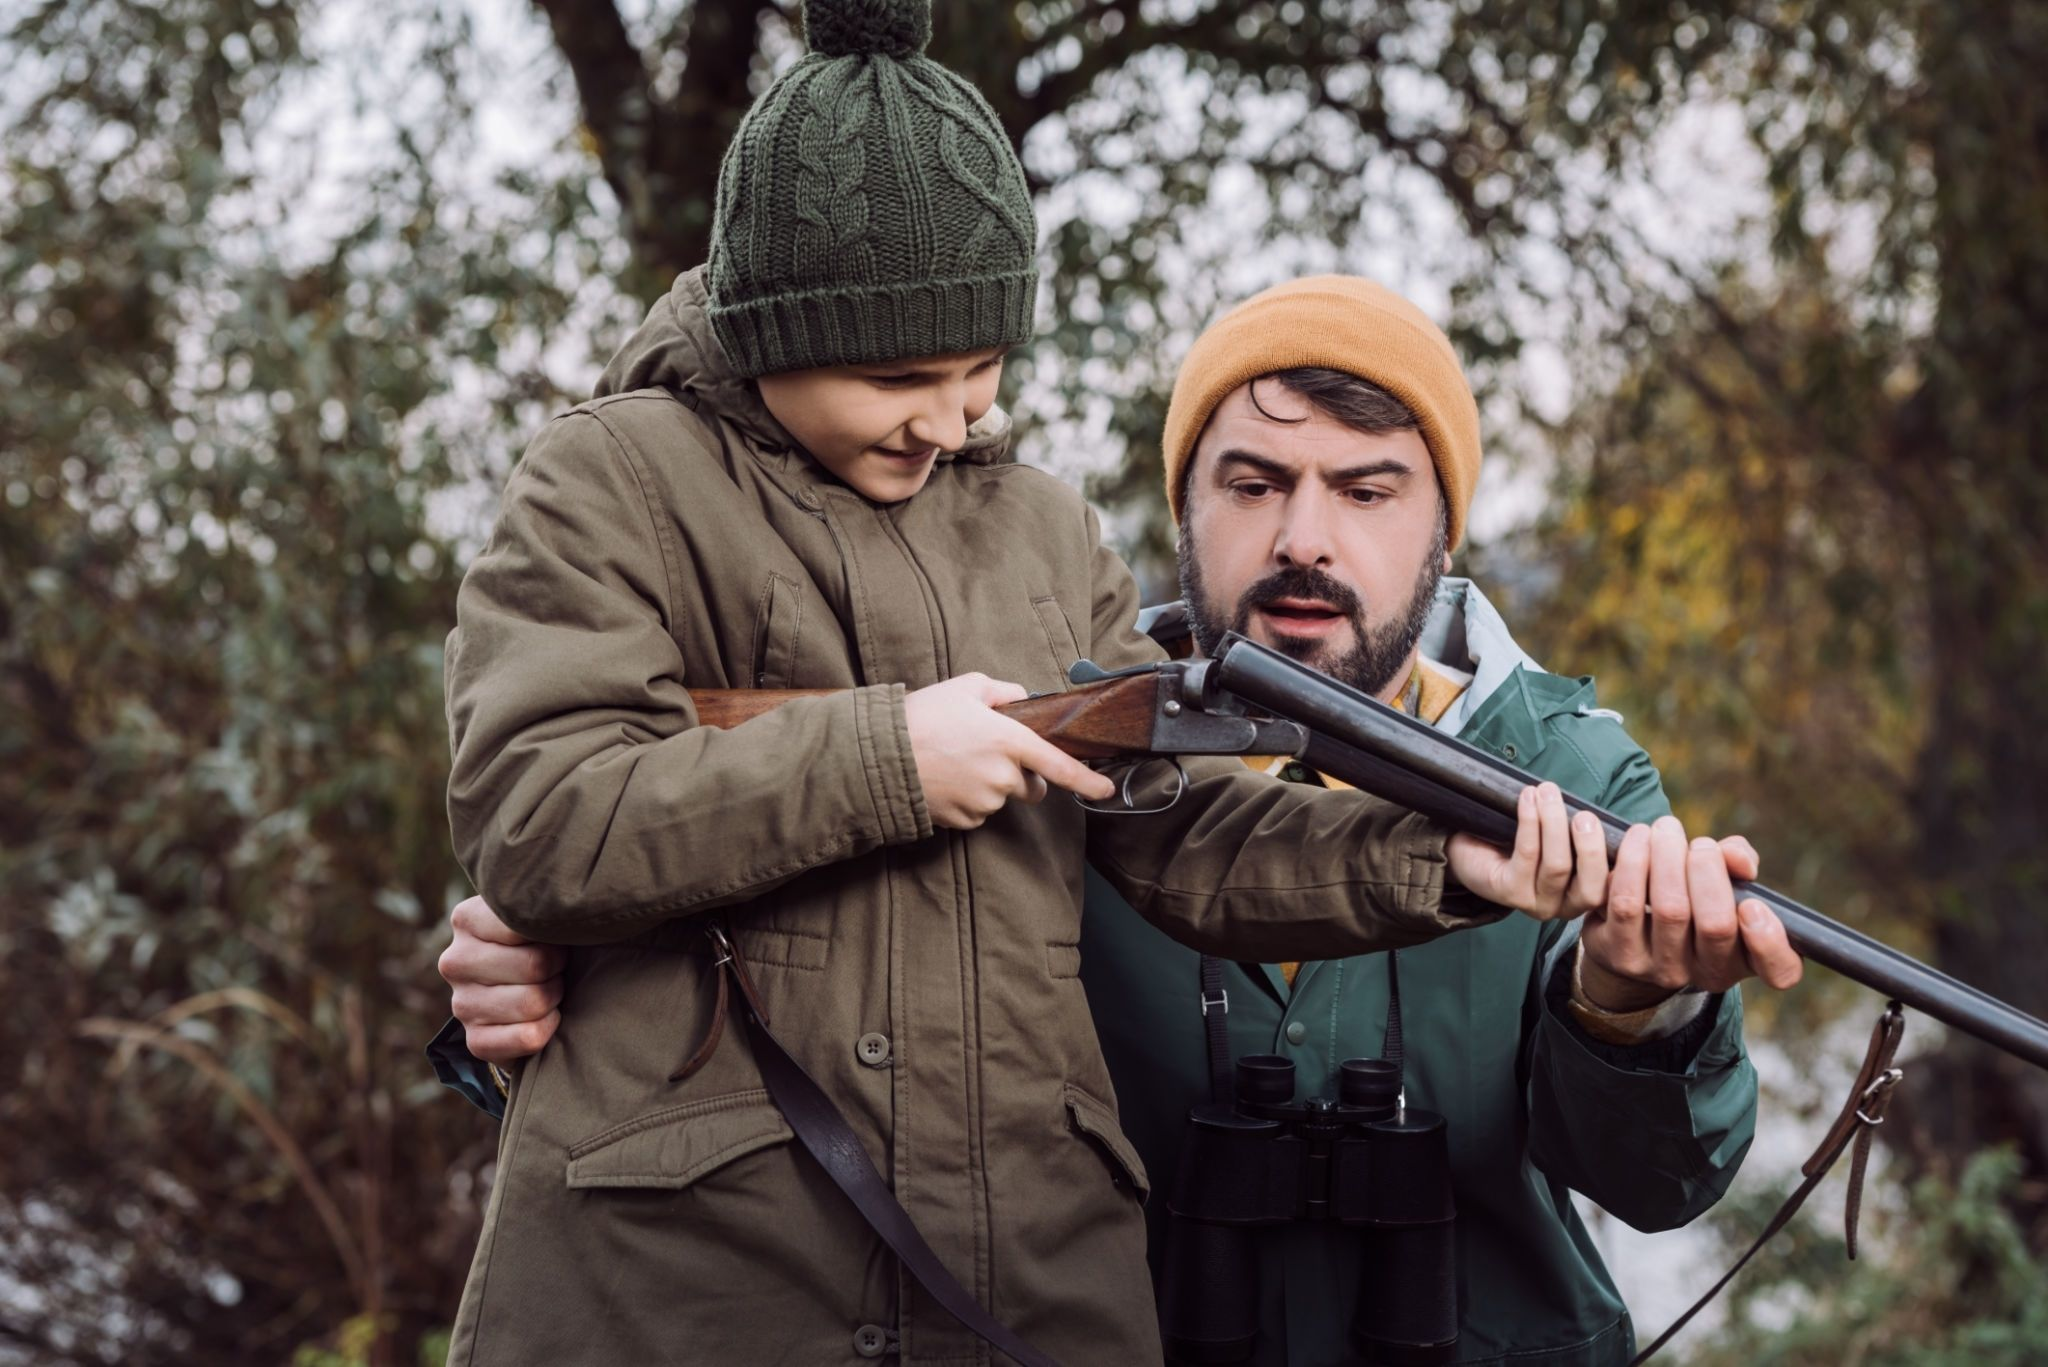 11 Mistakes Adults Make When Hunting With Kids